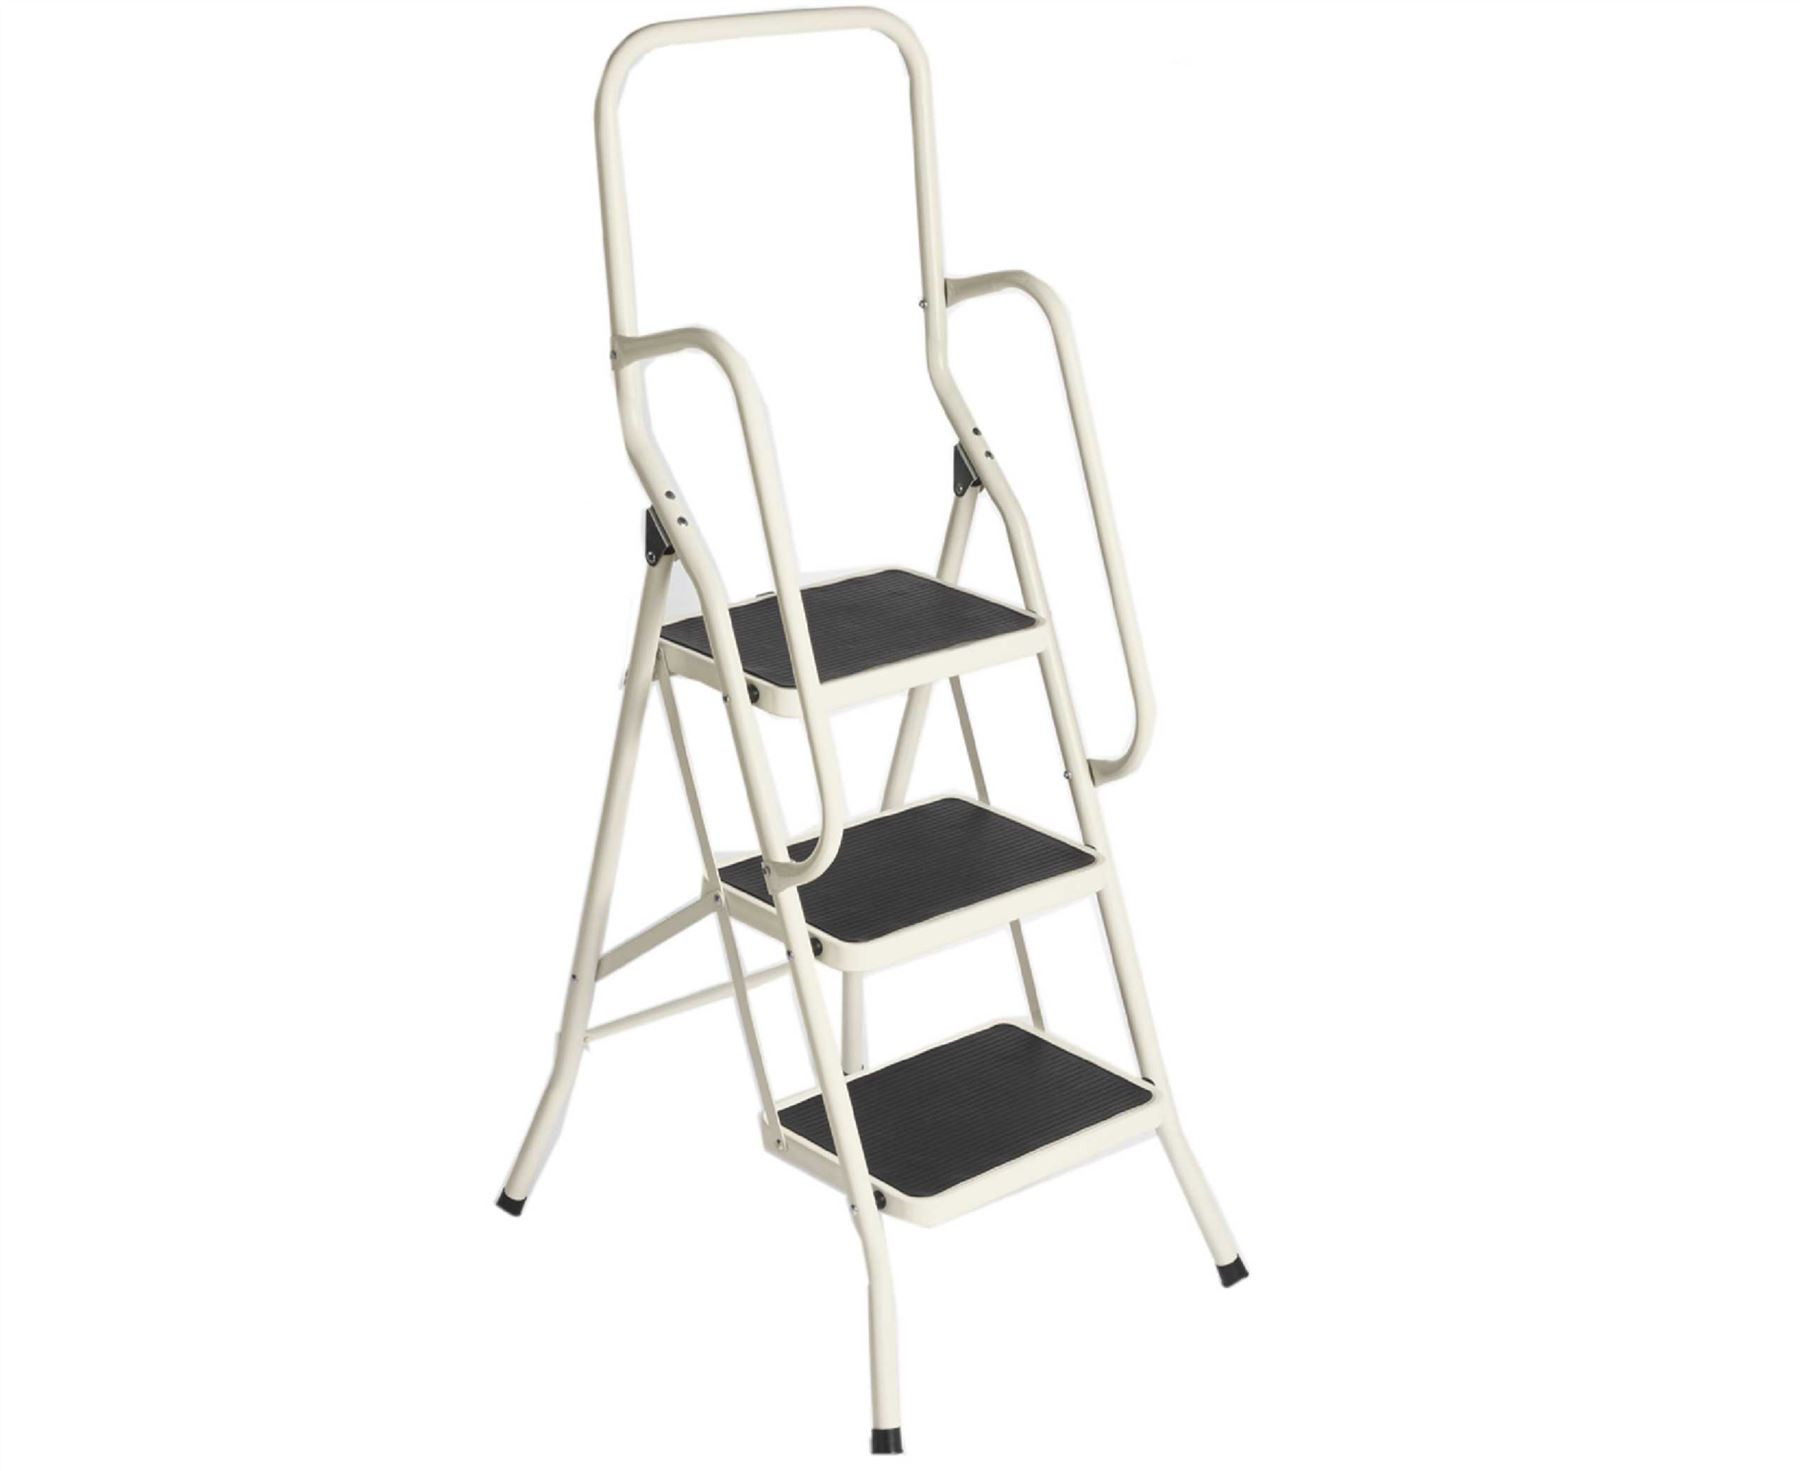 3 Step Safety Ladder Buttermilk Foldable Non Slip Tread